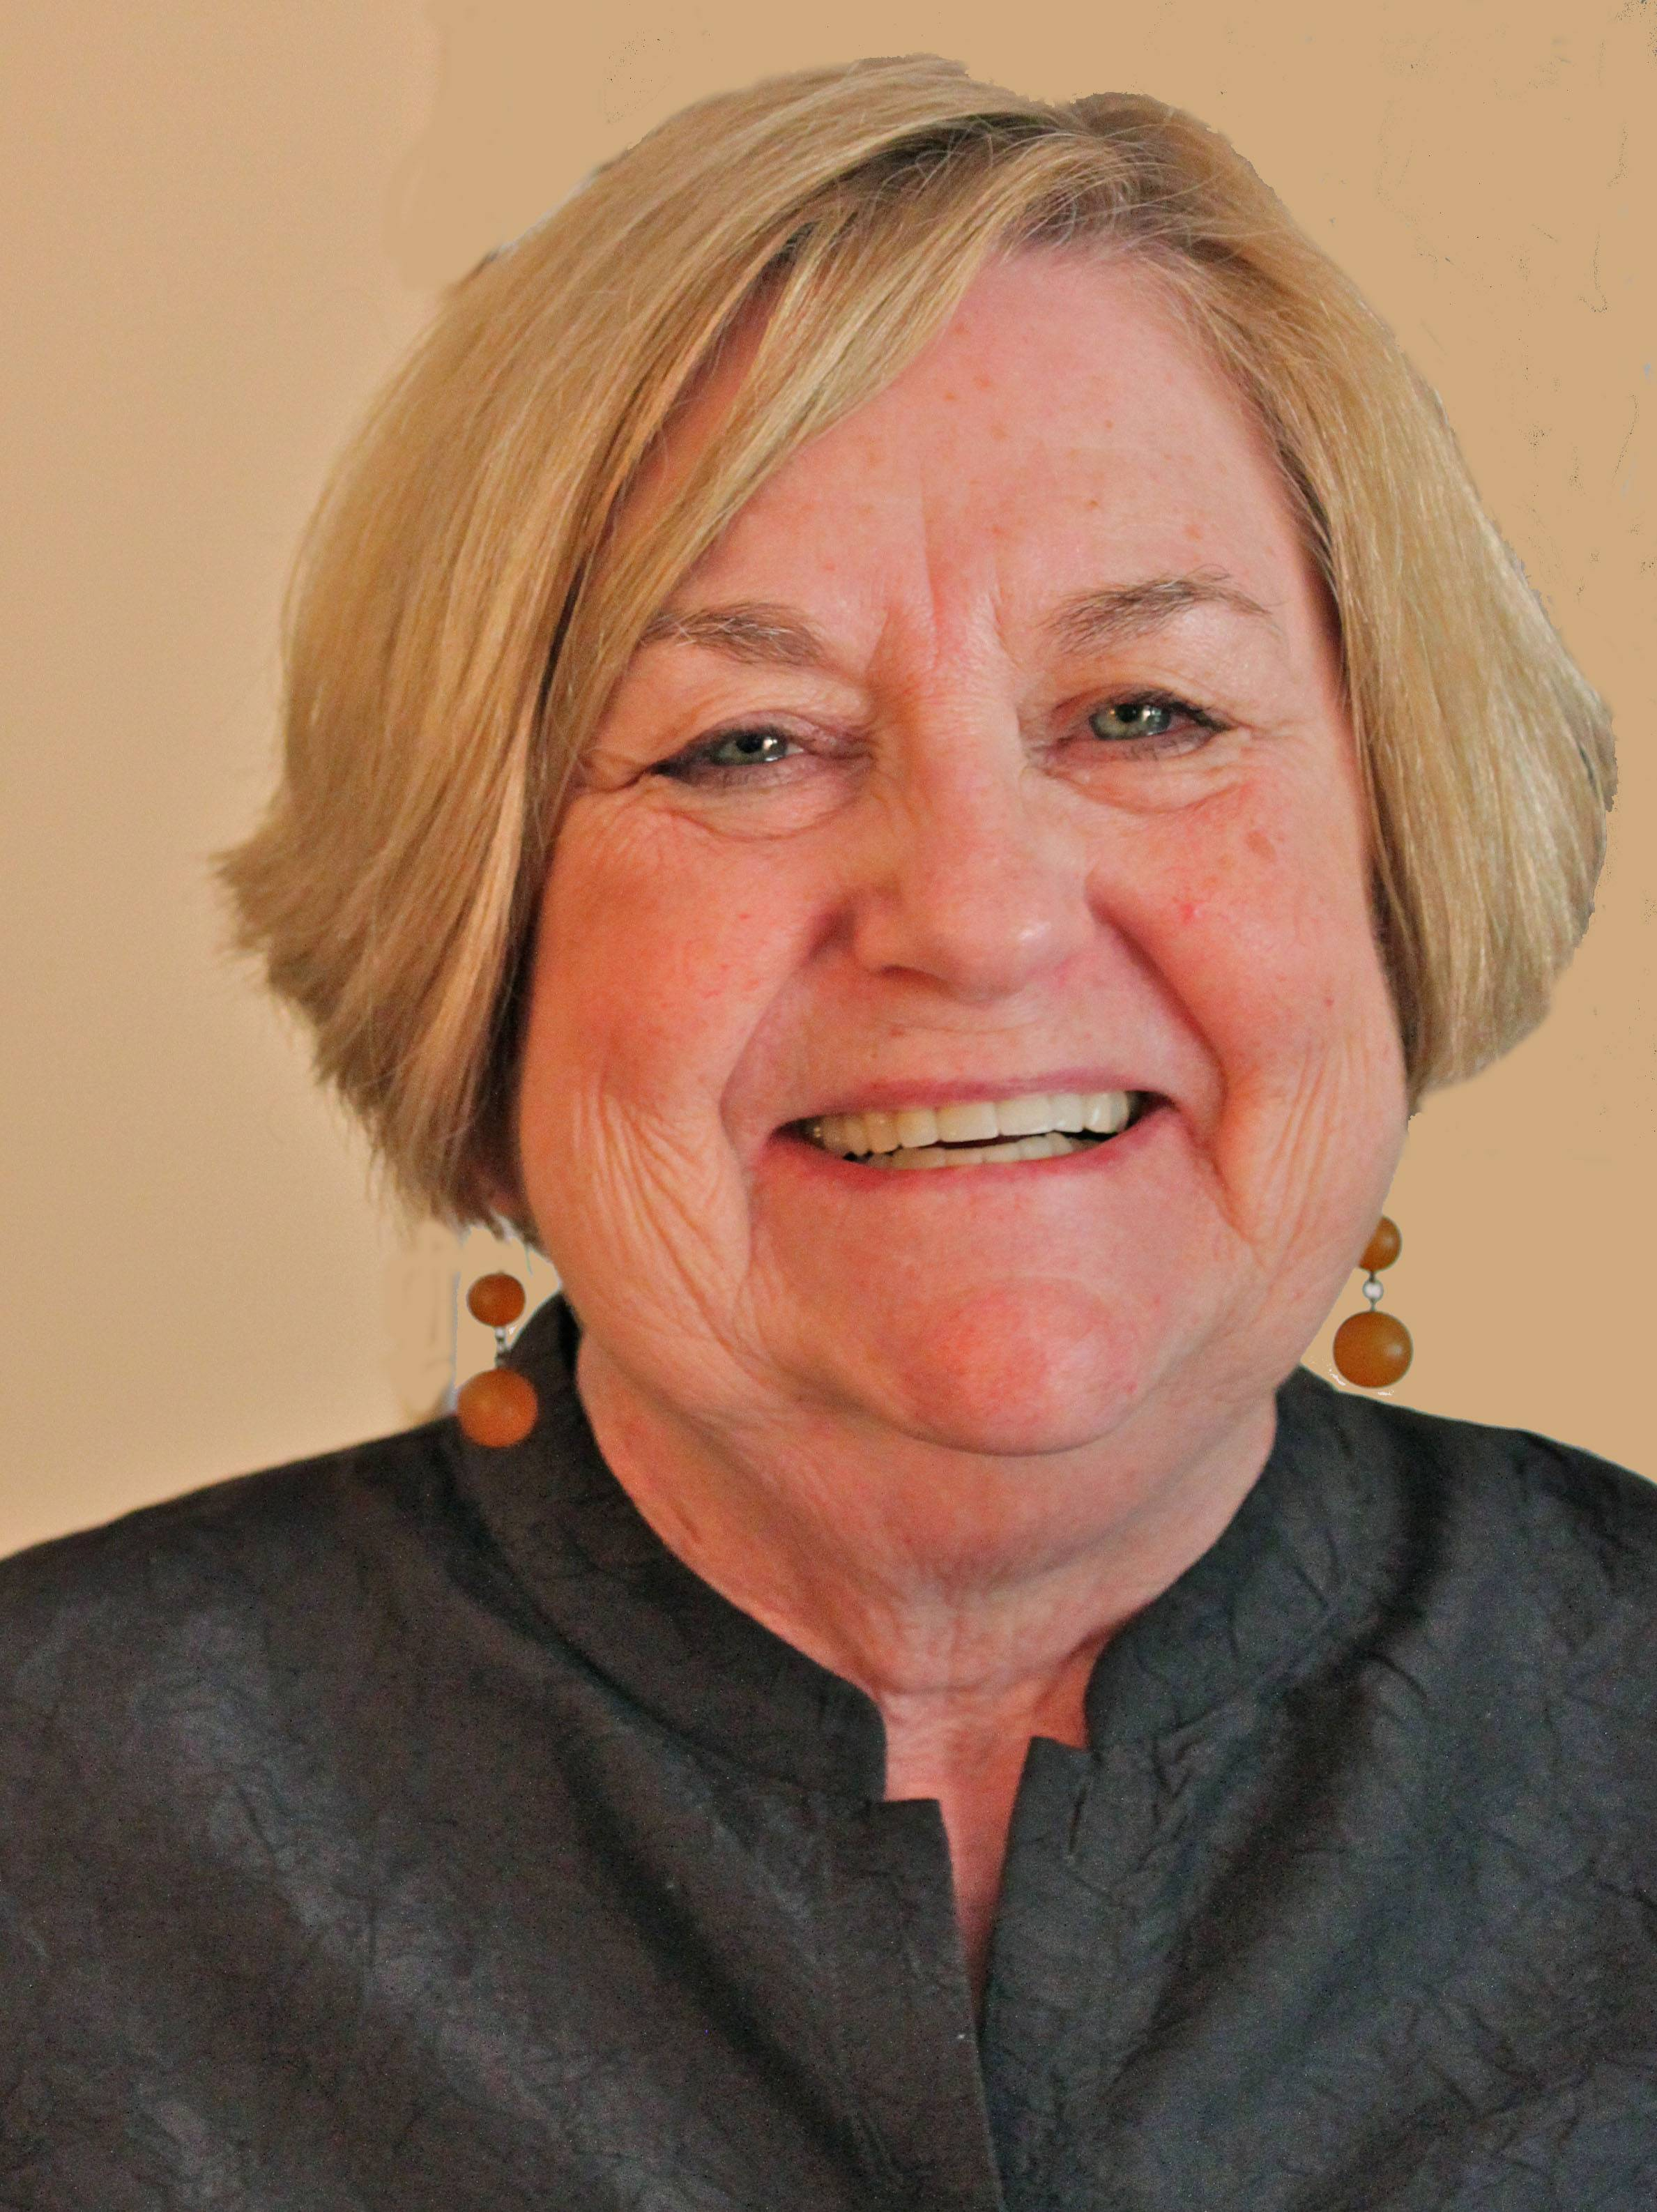 Patricia Harkin, running for Gail Borden Library Board (4-year Terms)